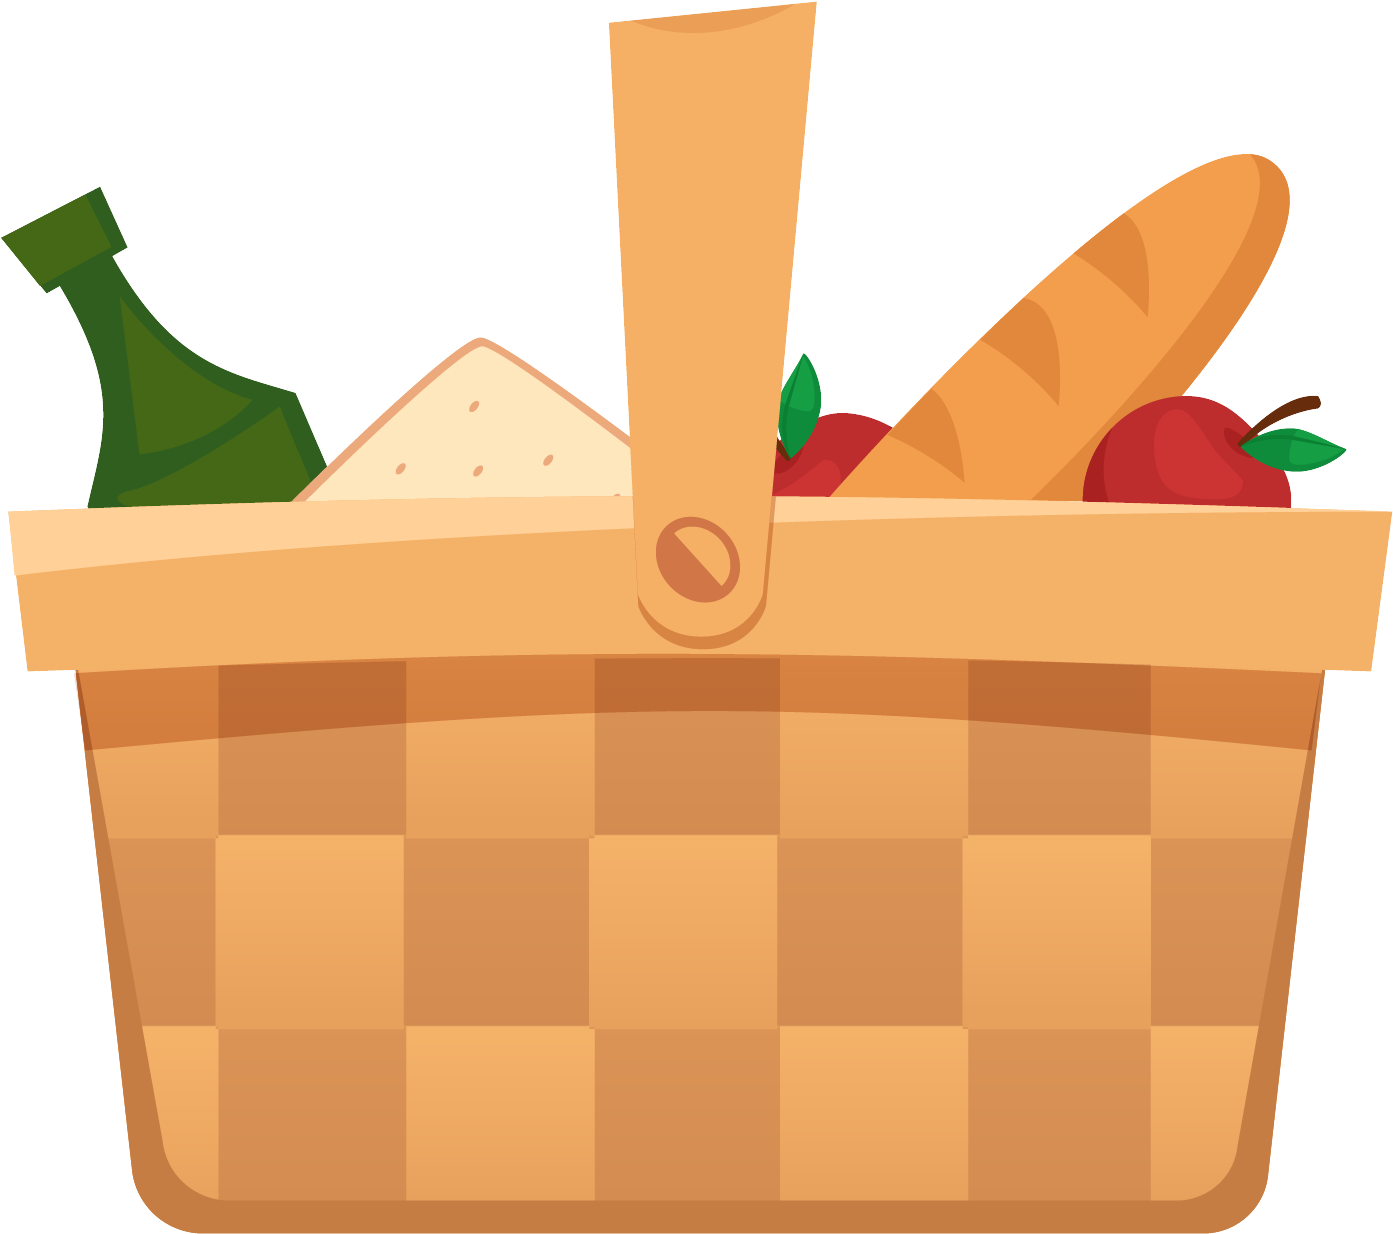 Basket simple clipart graphic freeuse download HD Dibujos Animados Simple Picnic Canasta Png Y Psd - Picnic Basket ... graphic freeuse download